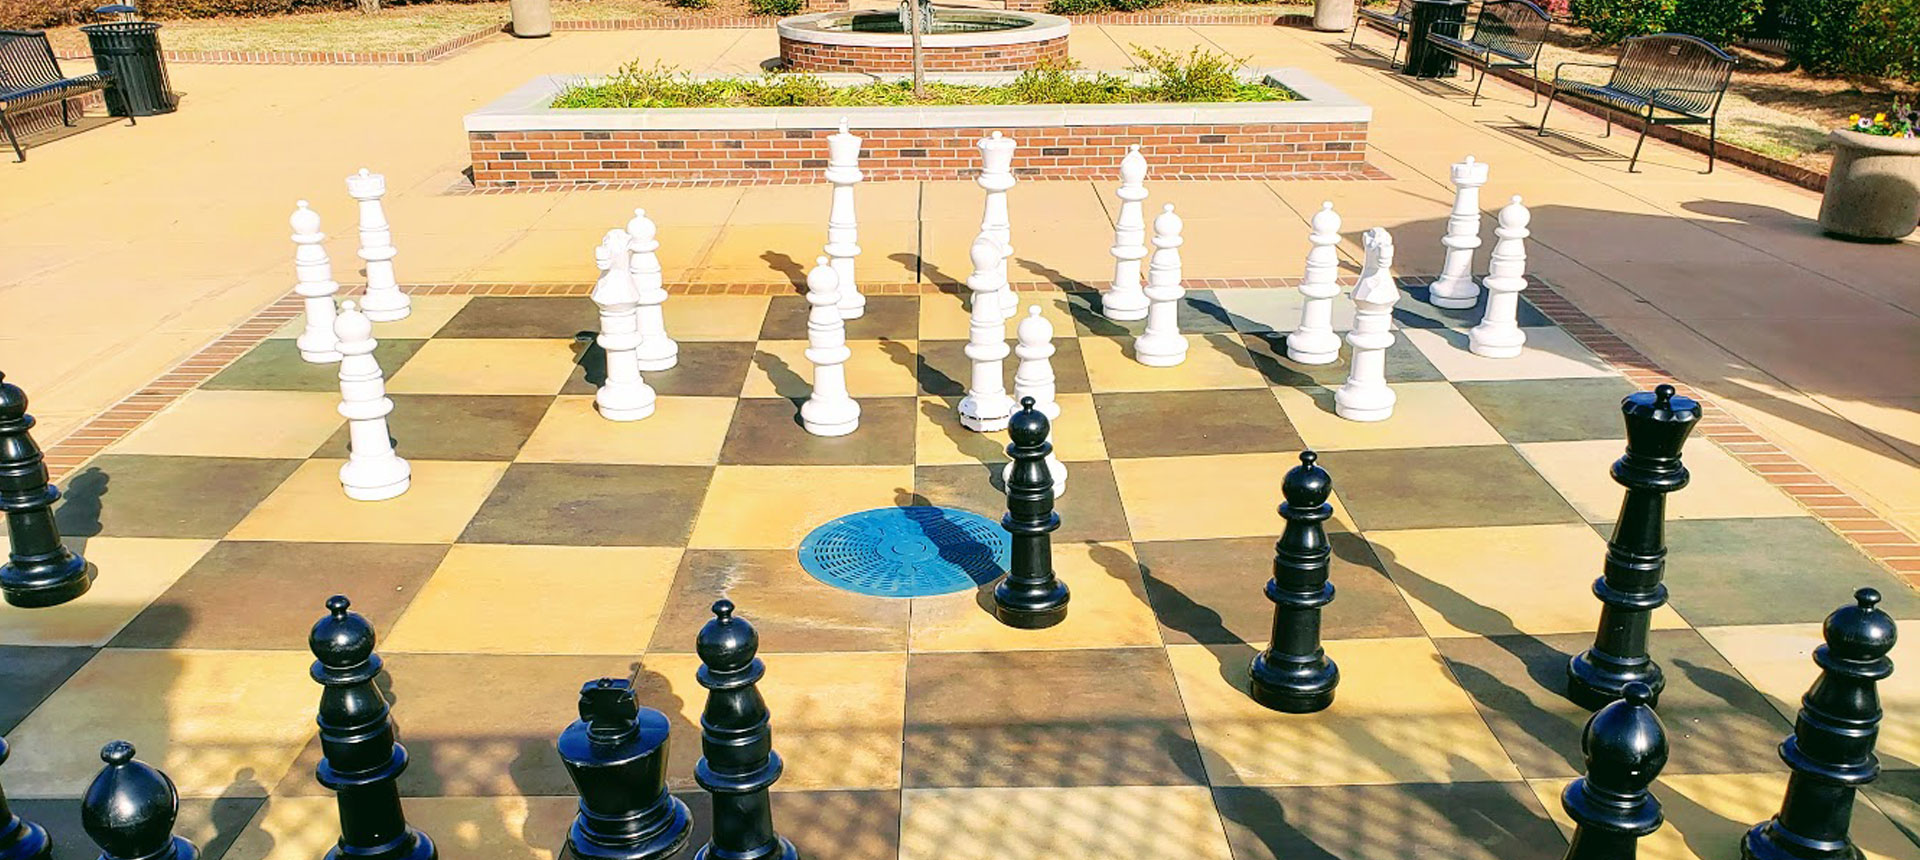 Chess pieces in Paul F. Thiele Park in Sandersville, Georgia